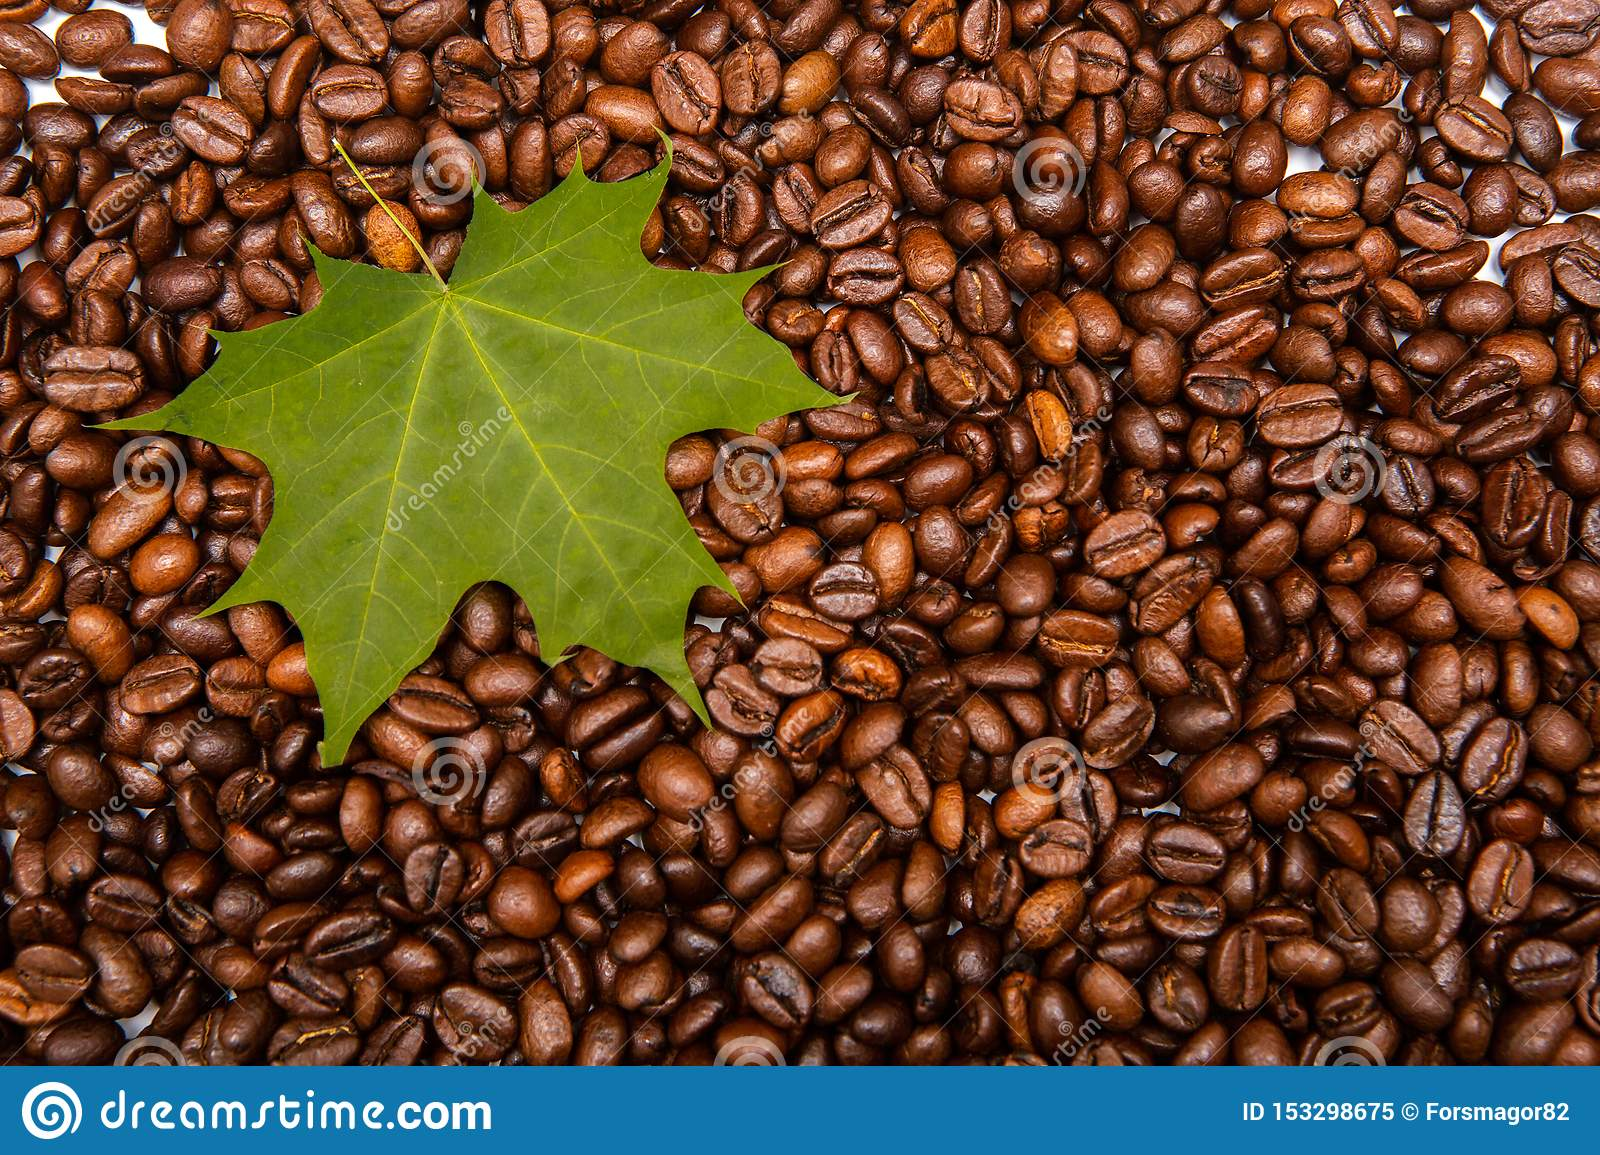 Autumn Maple Leaf On Roasted Coffee Beans. Stock Image ...